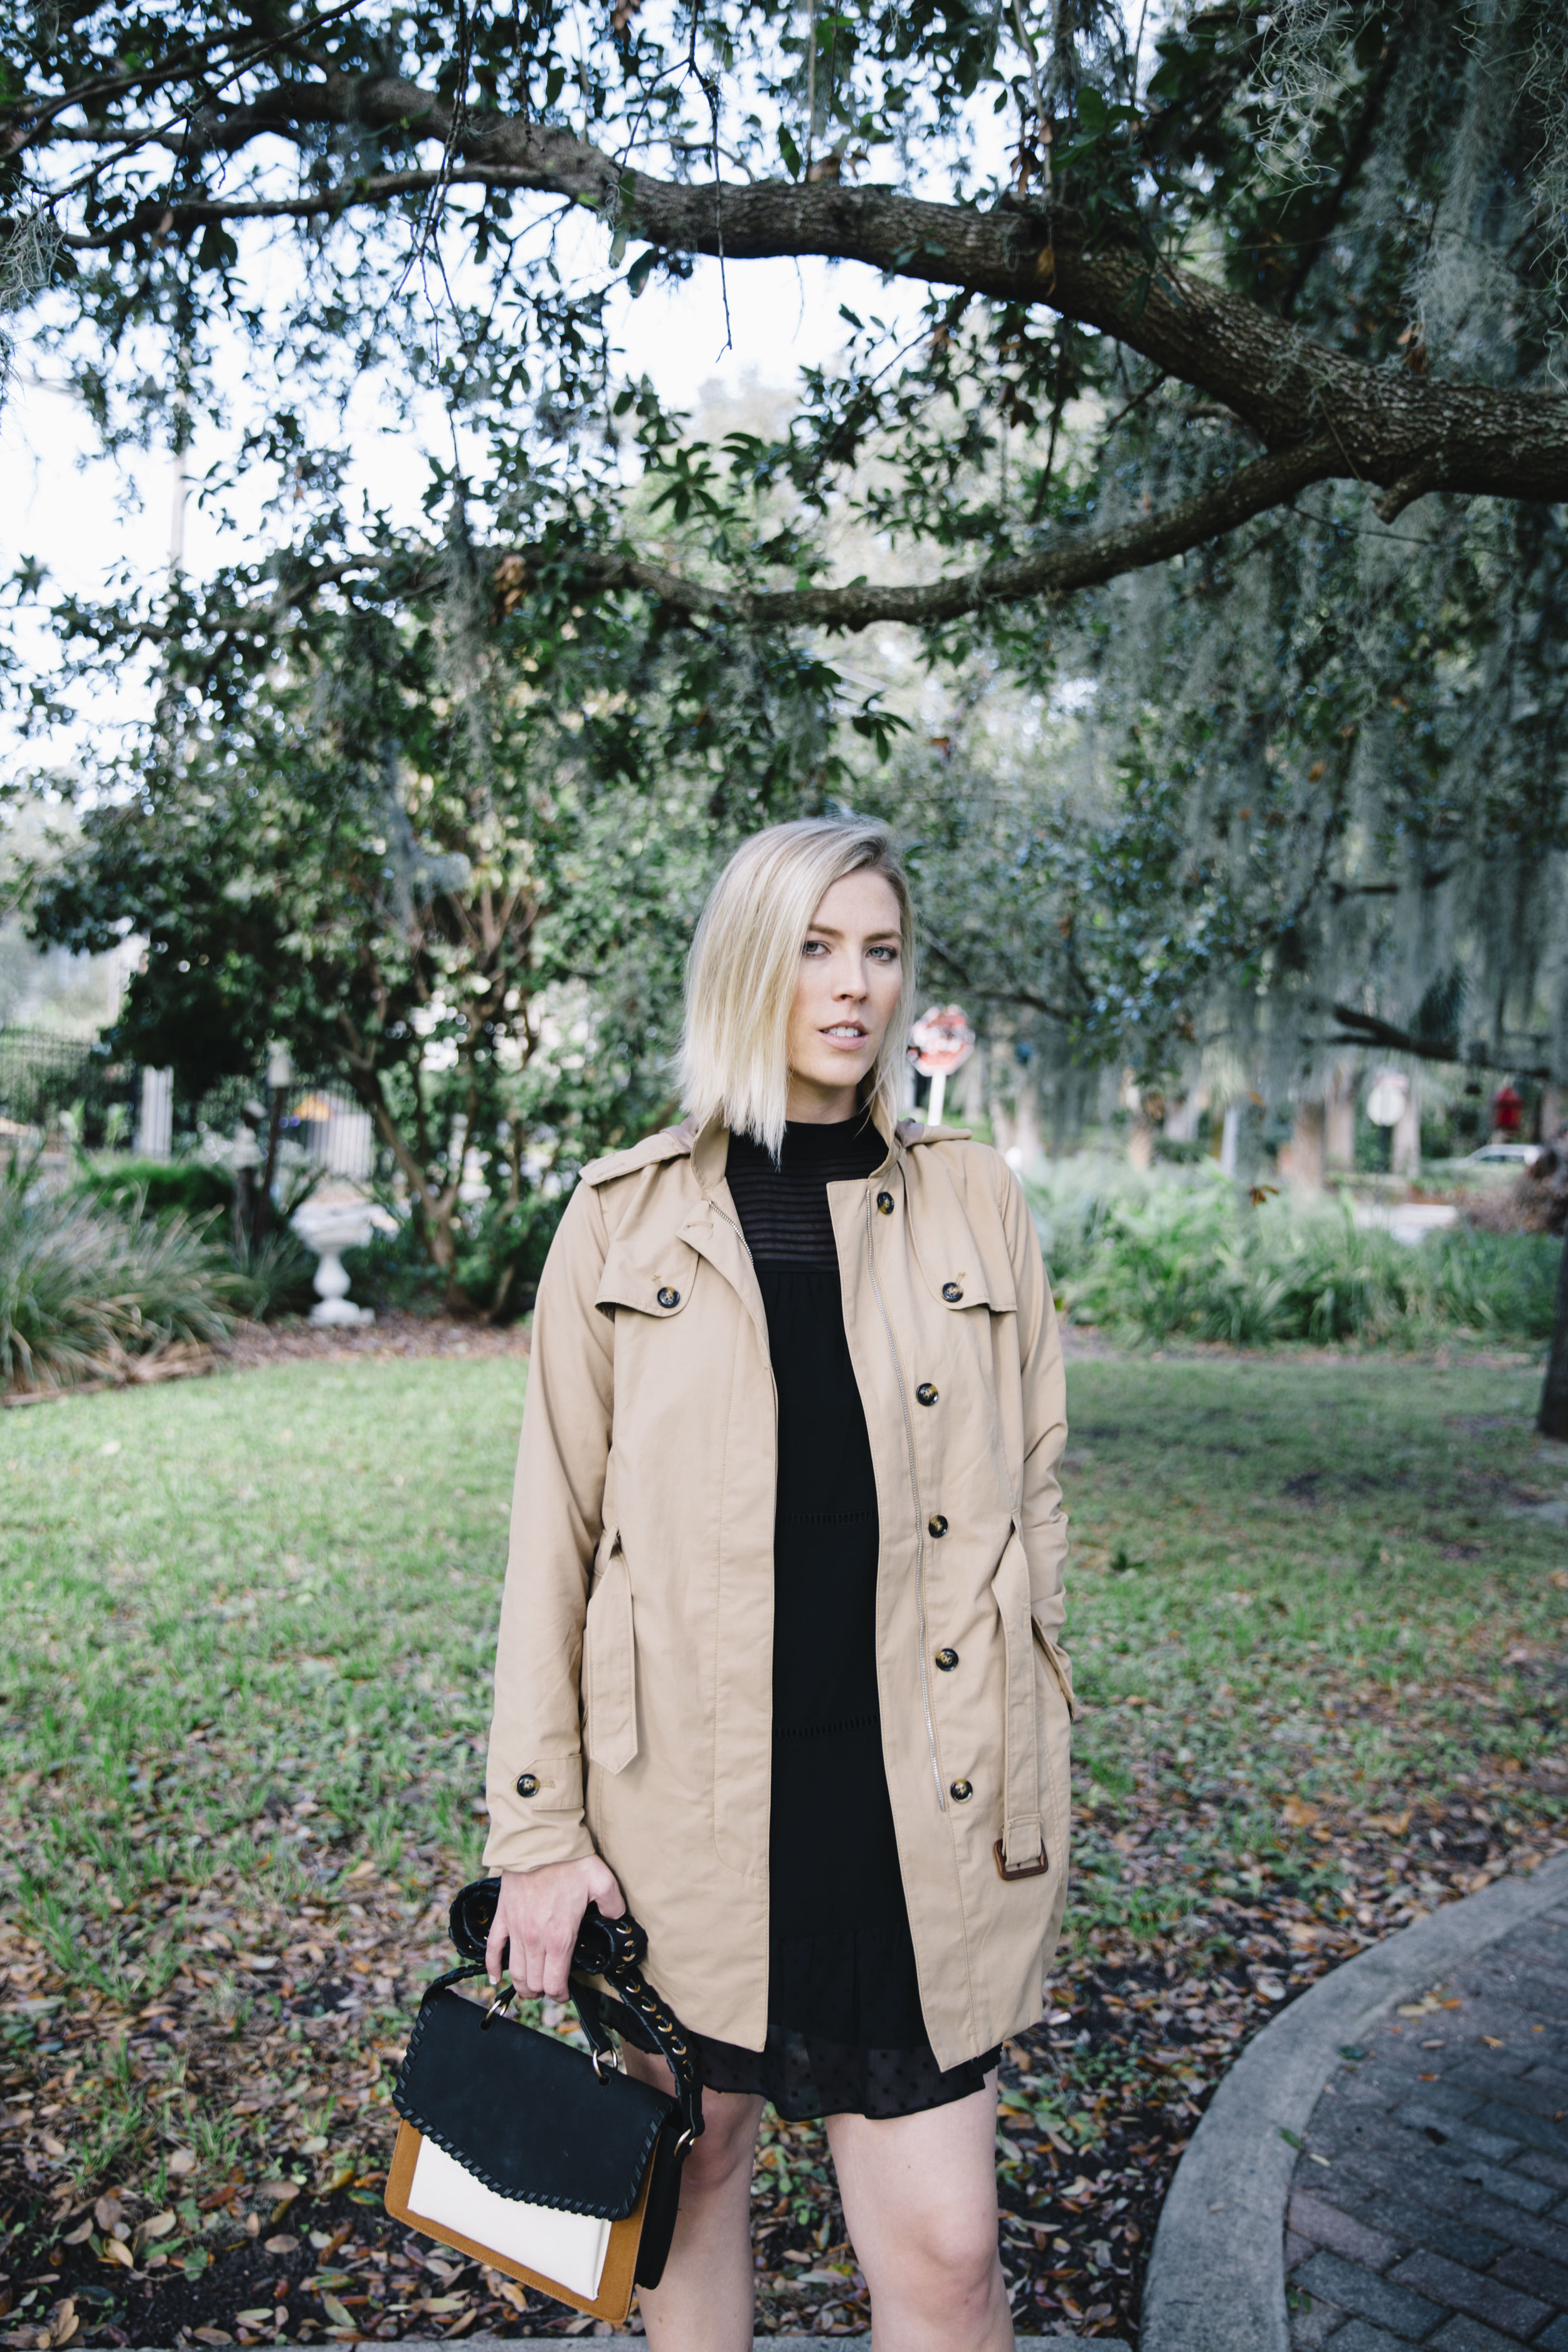 The Borrowed Babes Fashion Blogger Stephanie Mack Kearney wearing Target Style – A New Day Trench Coat with Who What Wear Dress and Handbag